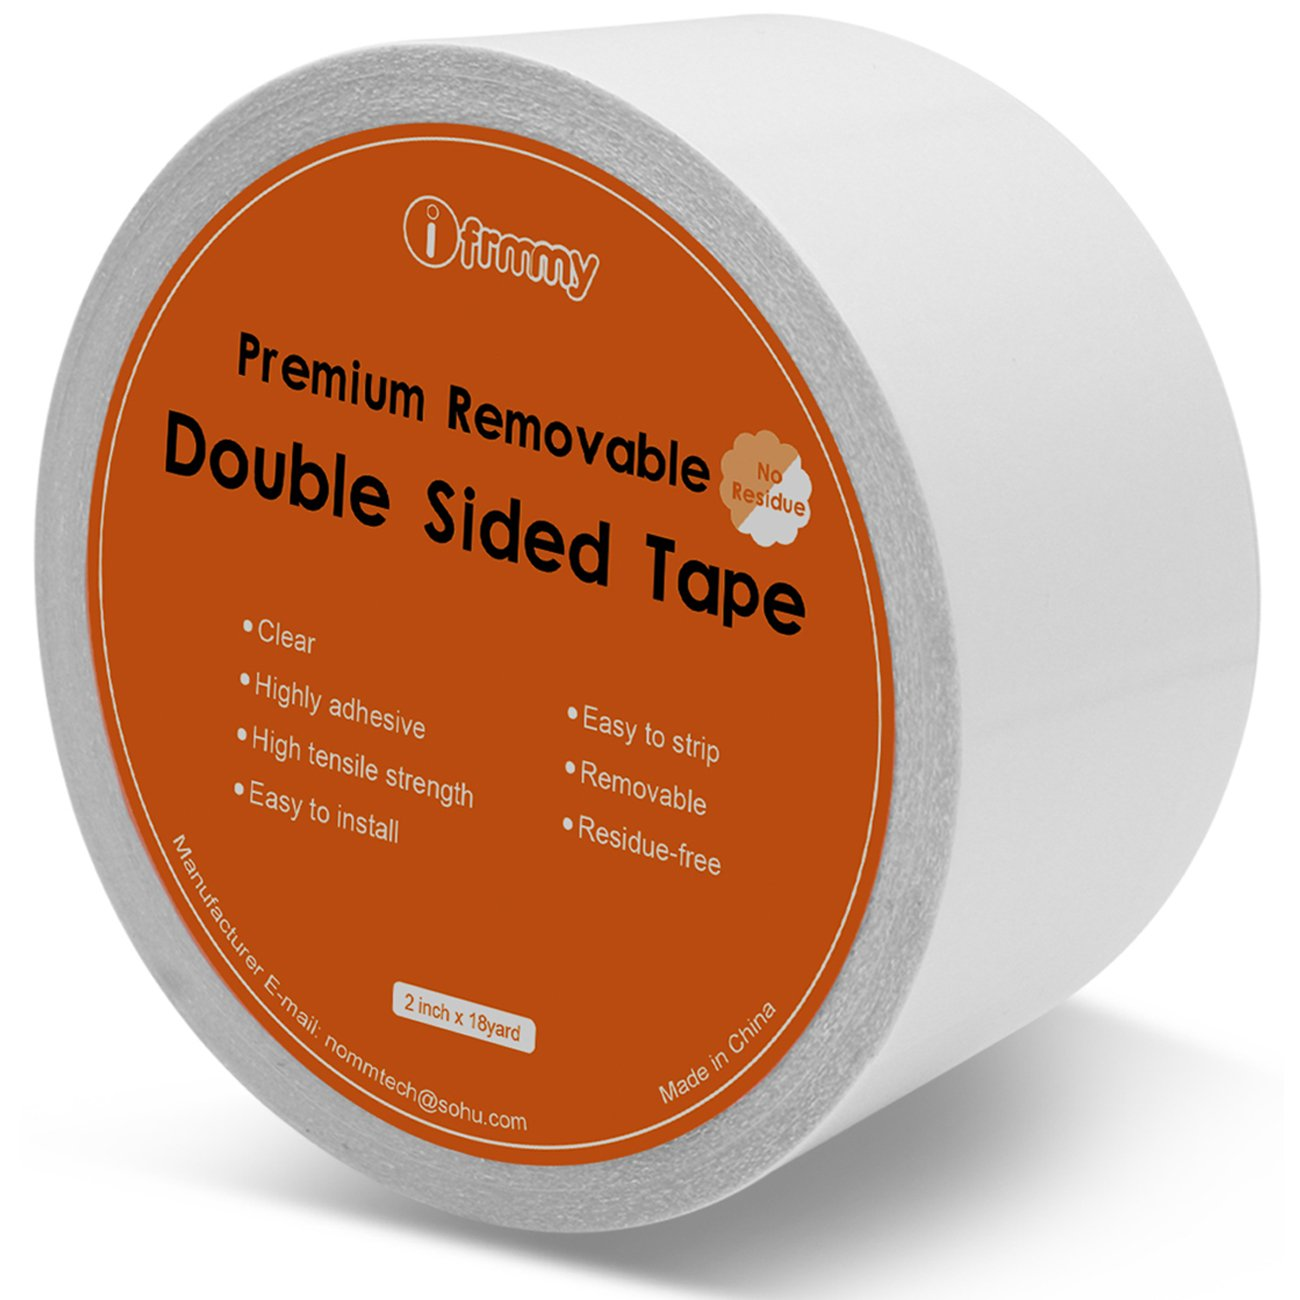 ifrmmy Removable Clear Double Sided Sticky Tape - No Residue, 2 inches x 20 Yards